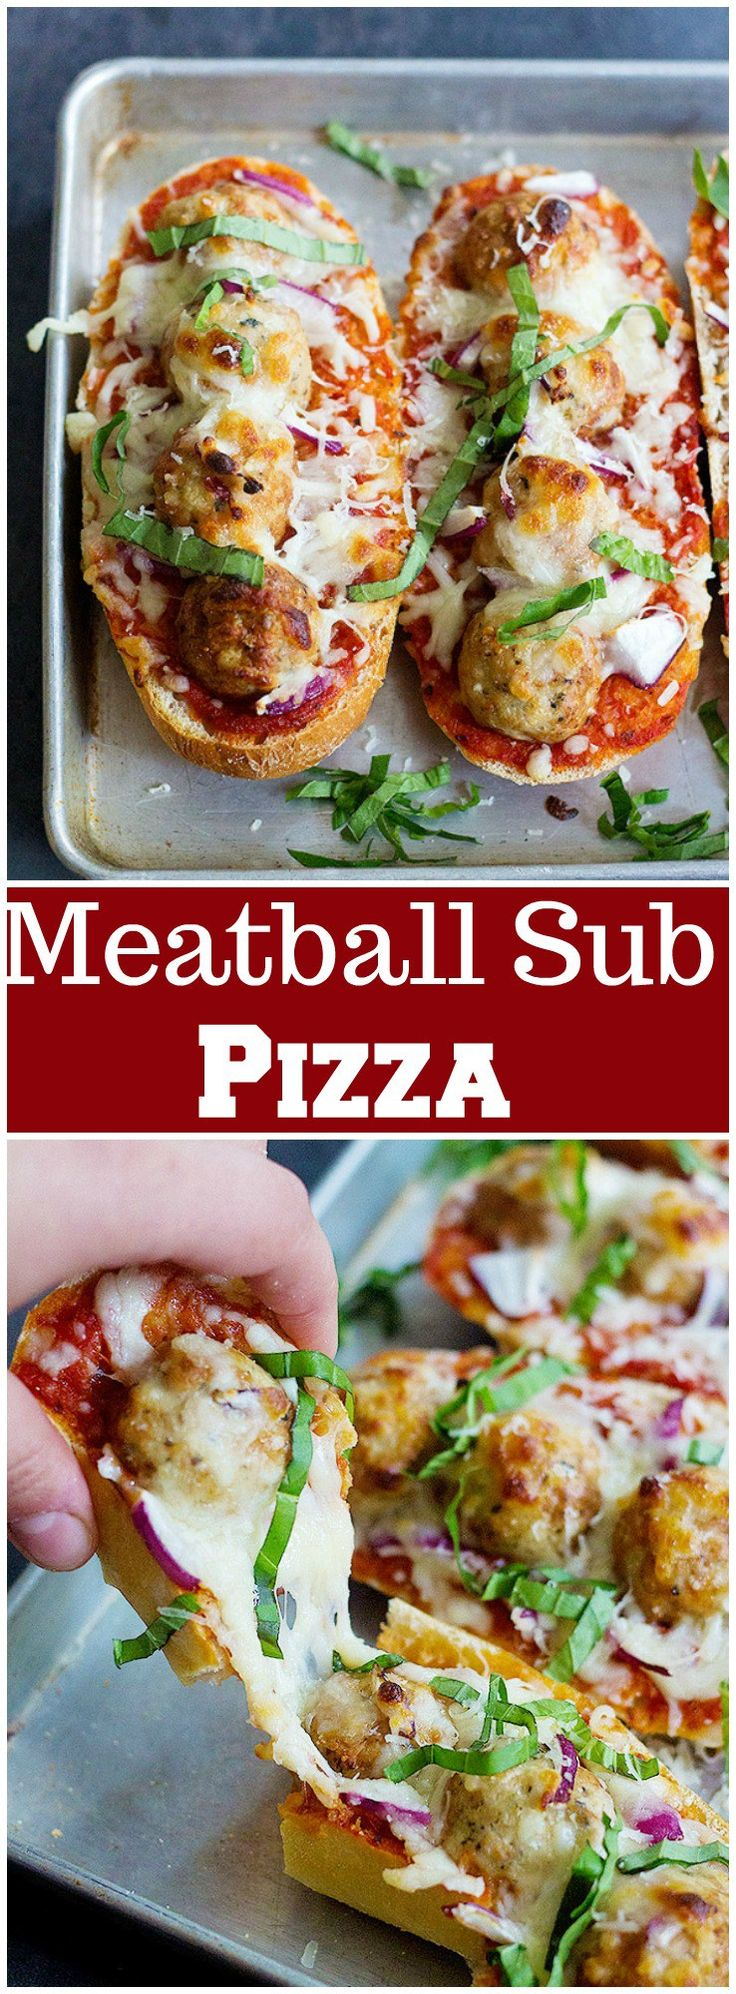 Take the good old sub sandwich to a whole new level by making Meatball Sub Pizza! Kids and adults both love this easy family meal!